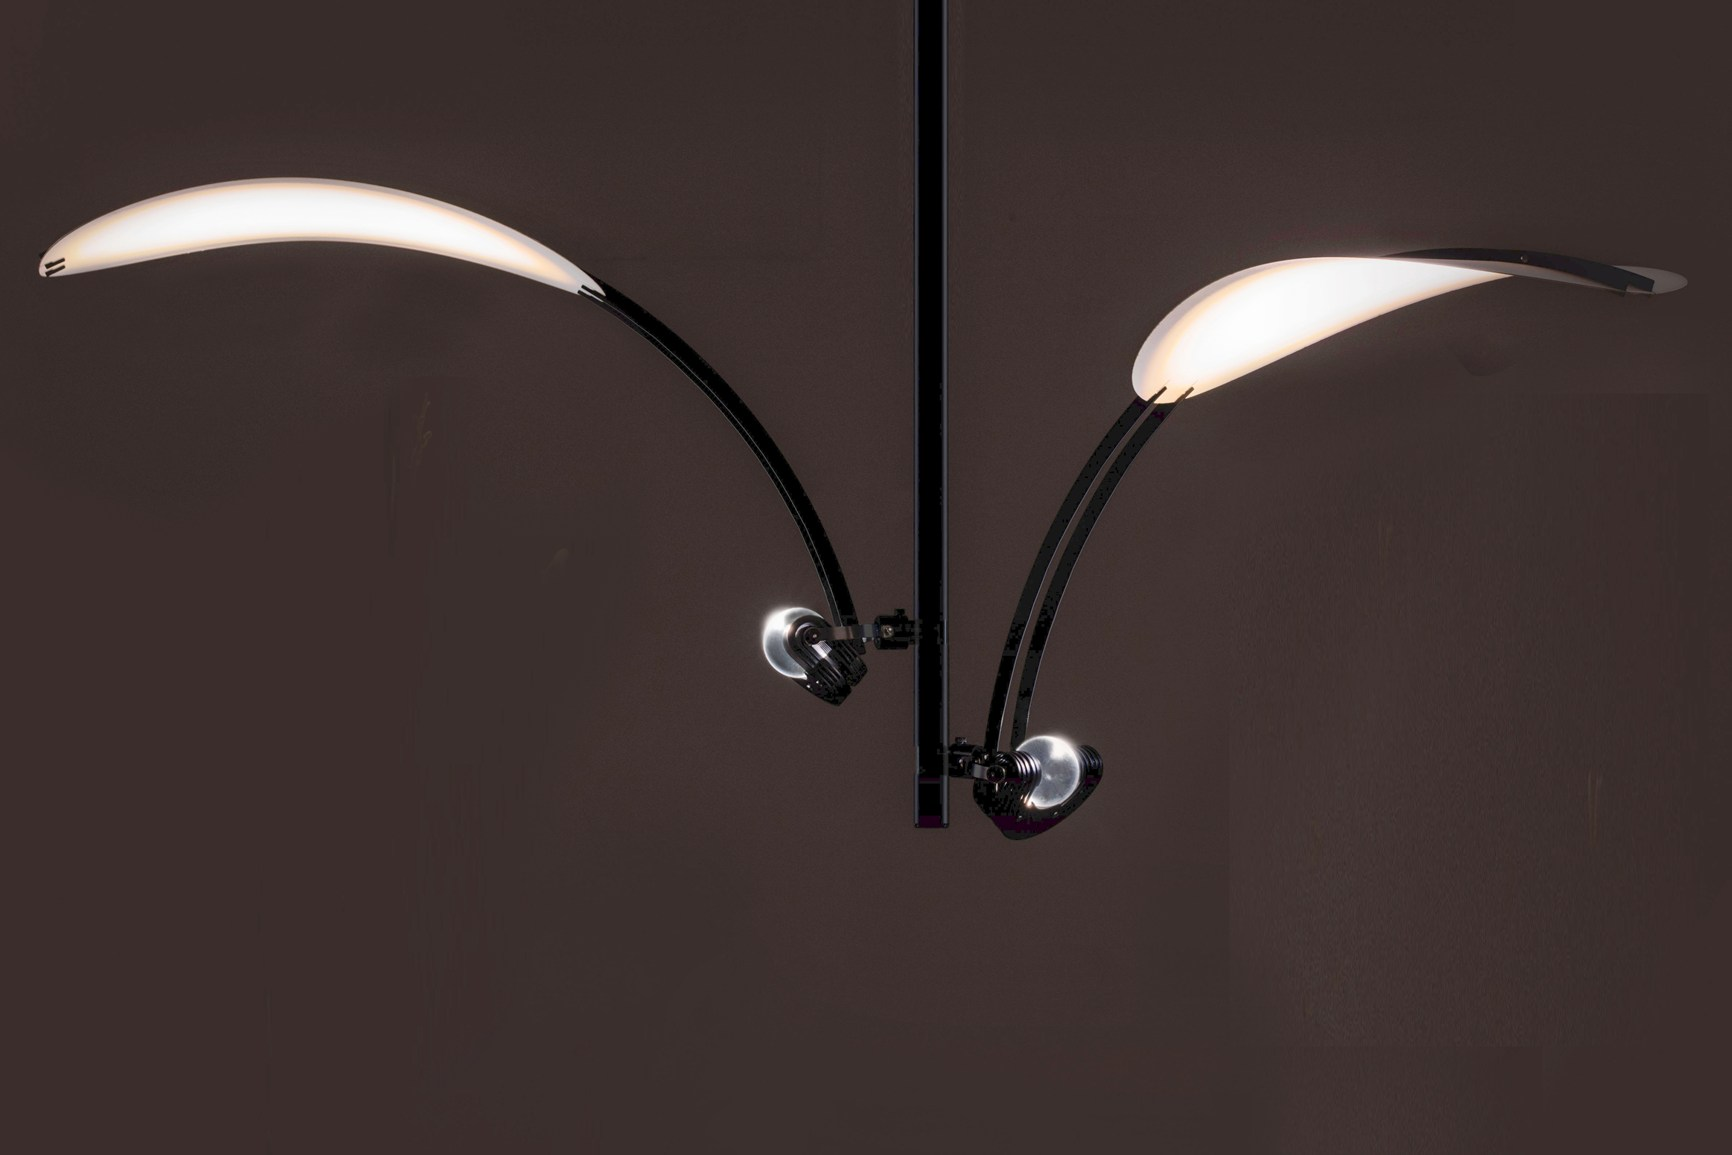 Float Lamp by Reid Hoyt & Max Simon for Jerry